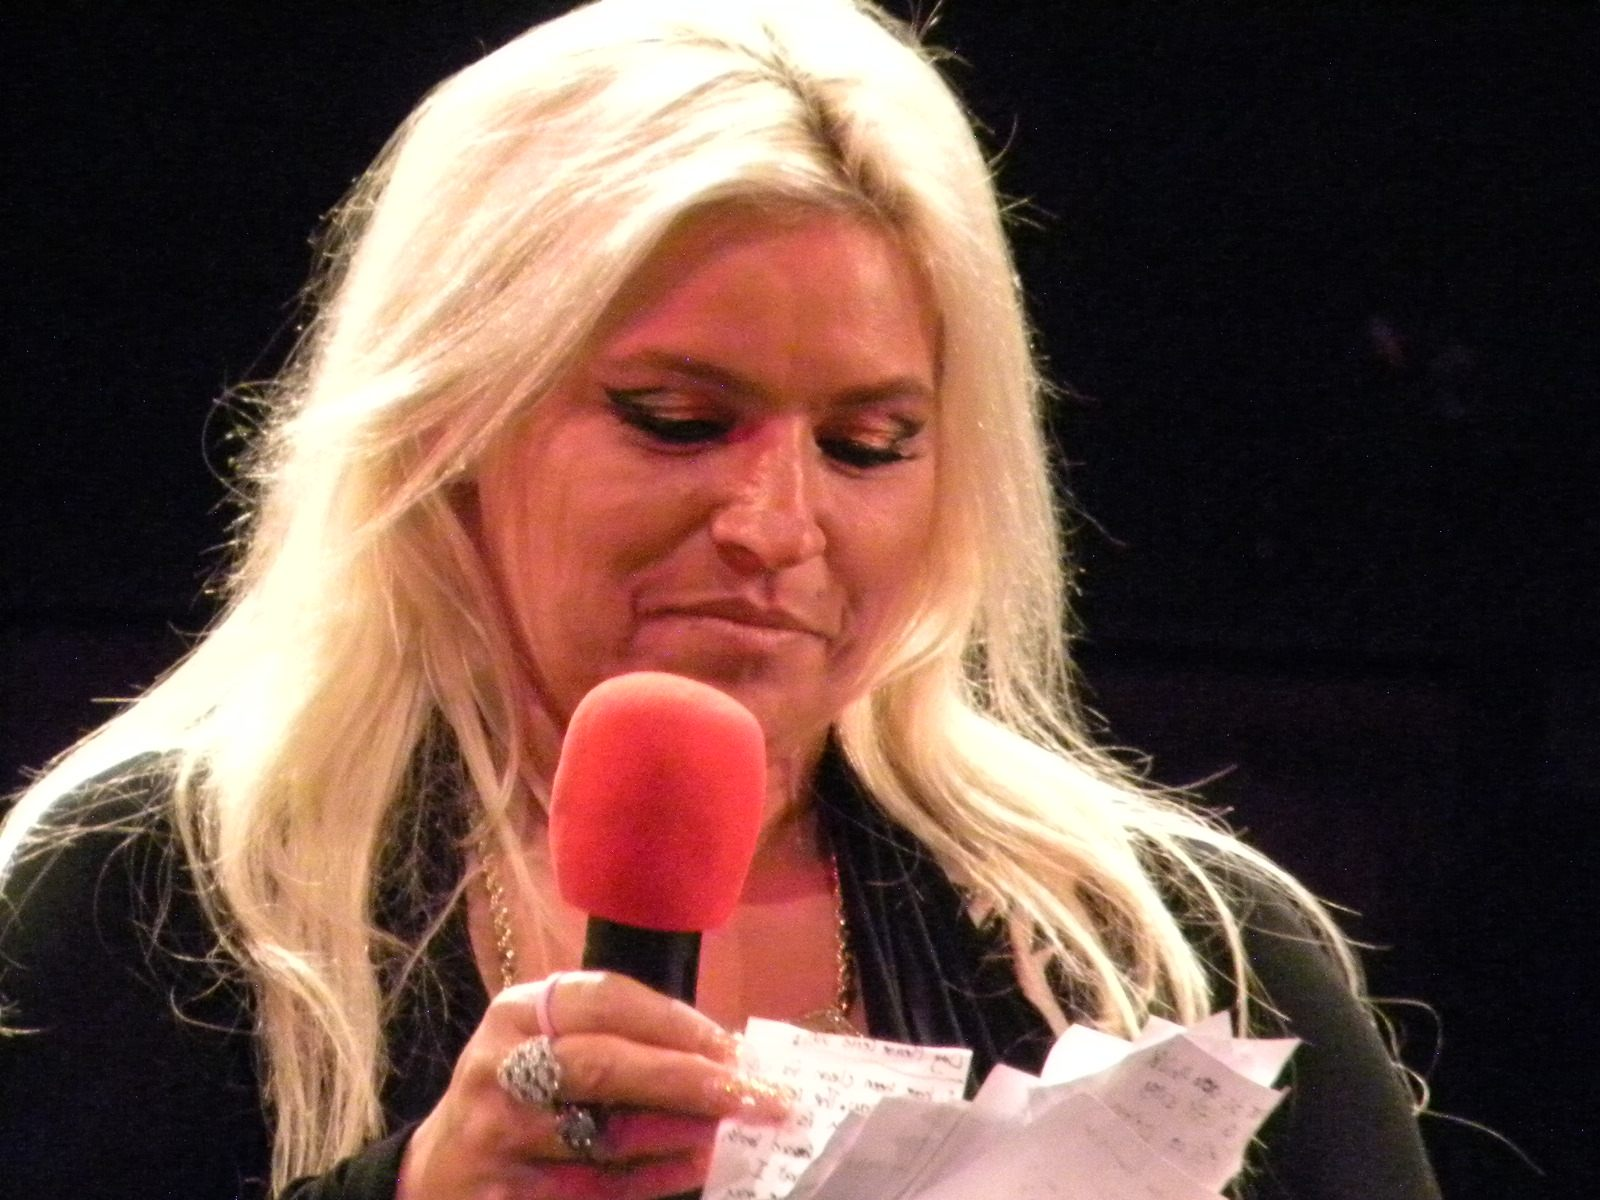 Intelligible beth chapman breast real opinion very